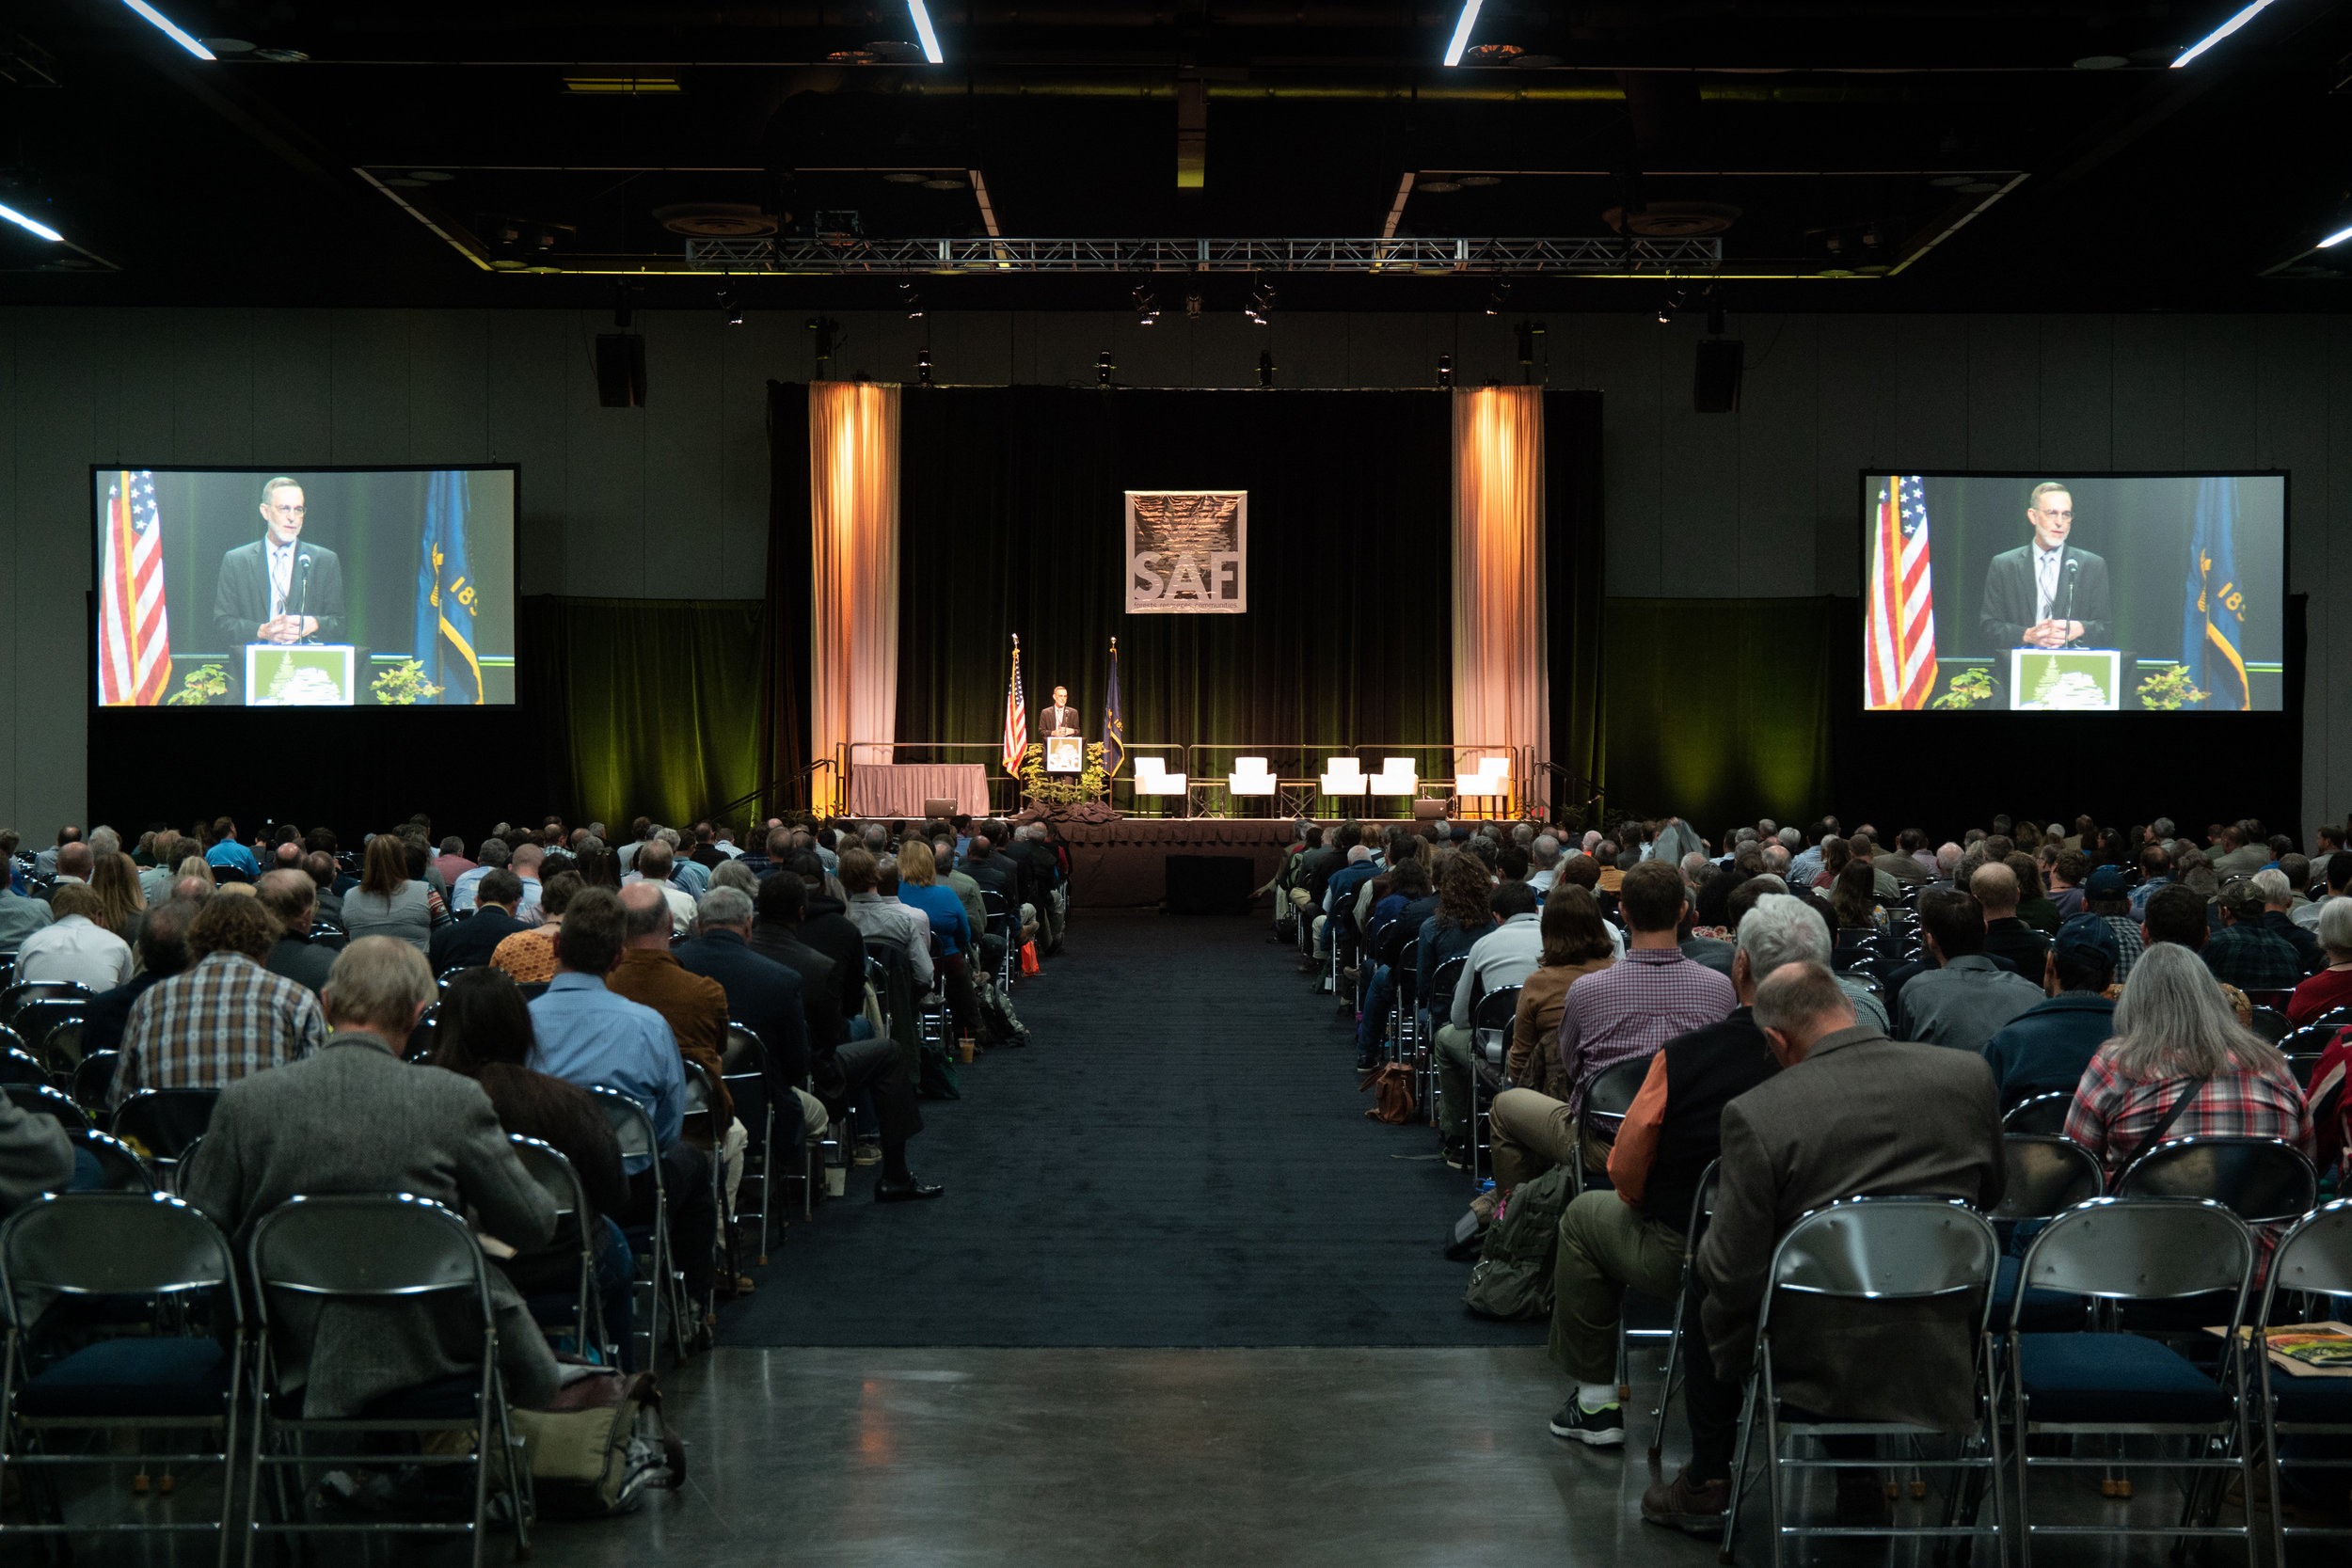 Wasim Muklashy Photography_-SAM_4740_Society of American Foresters National Convention_313.jpg